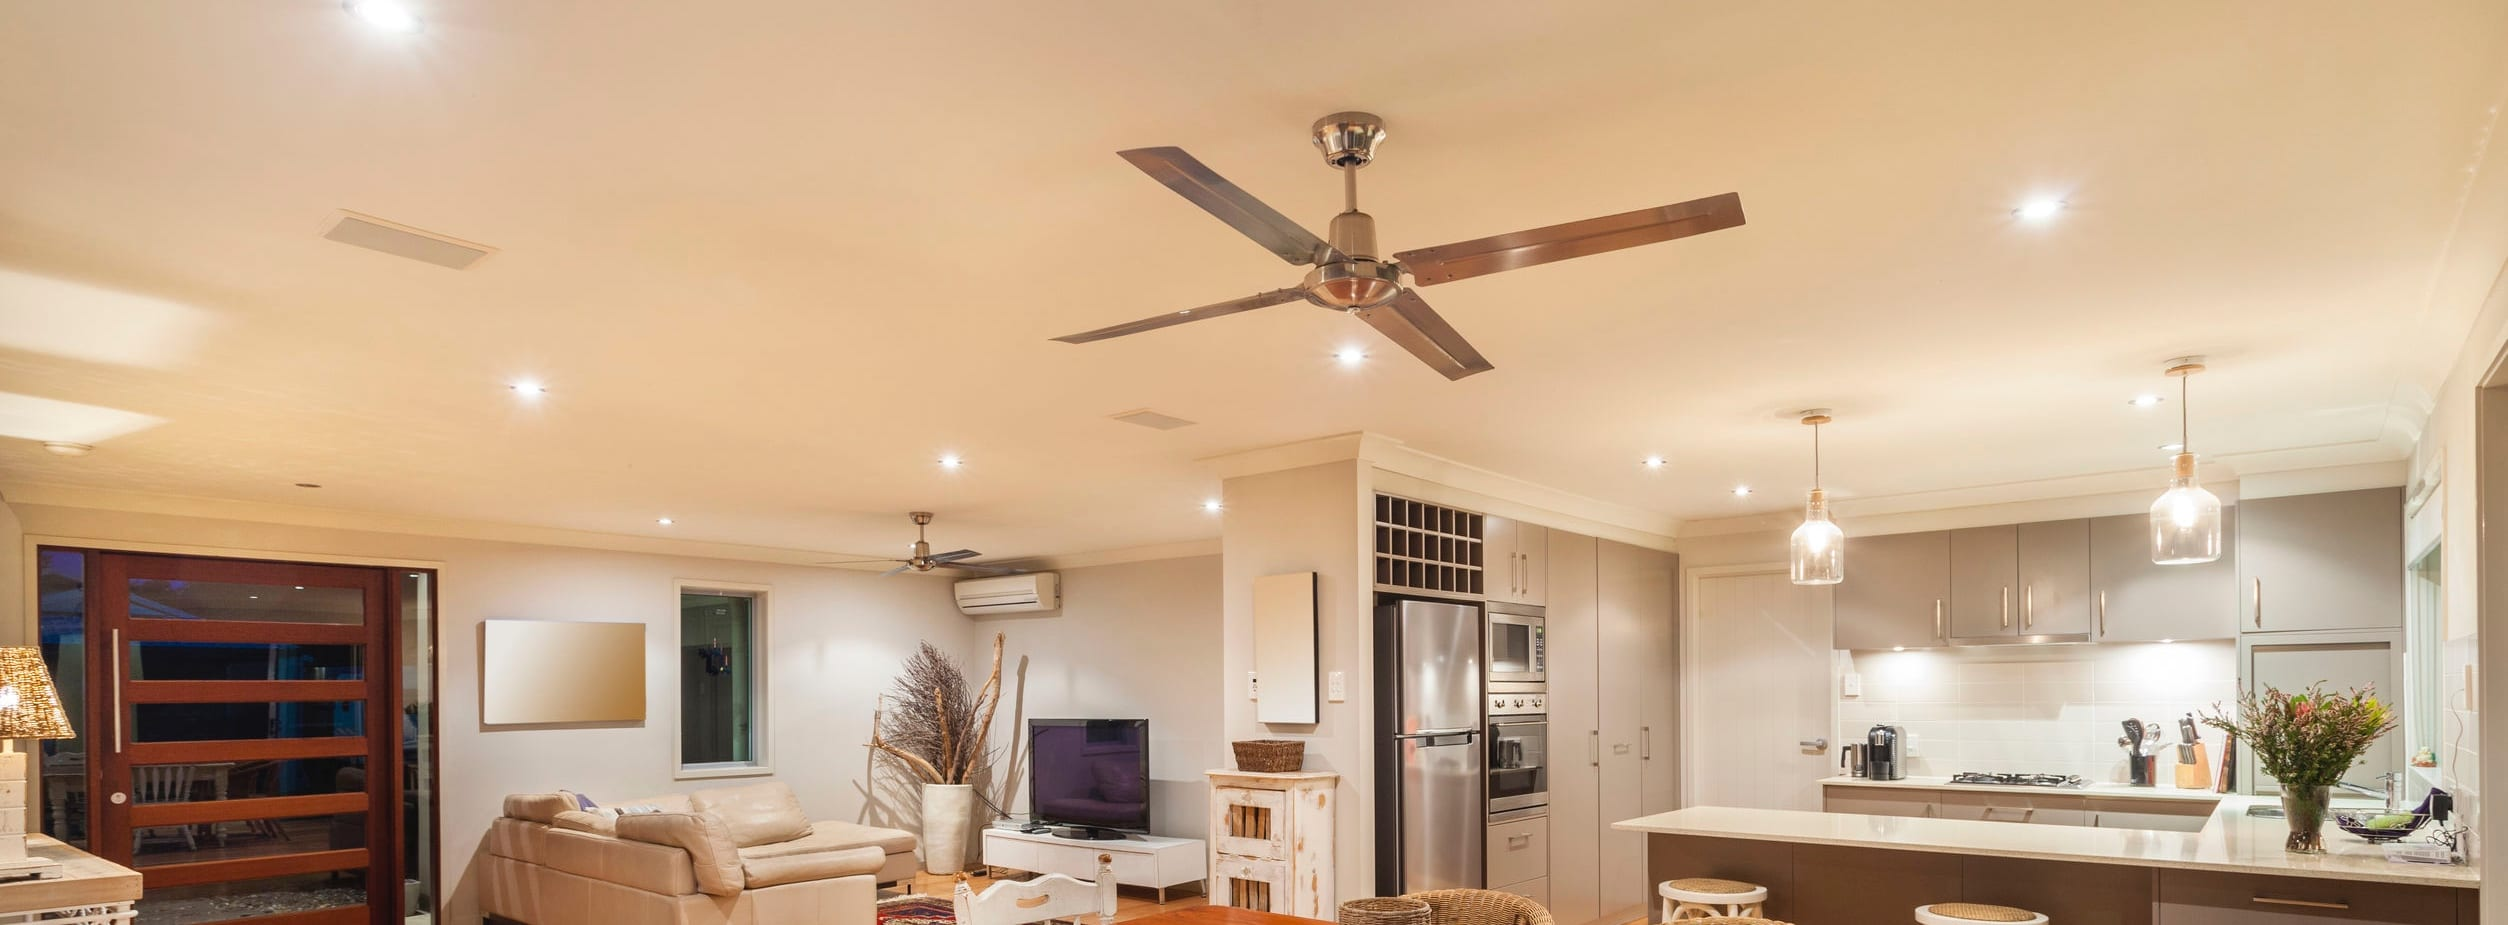 Interior of home with ceiling fan